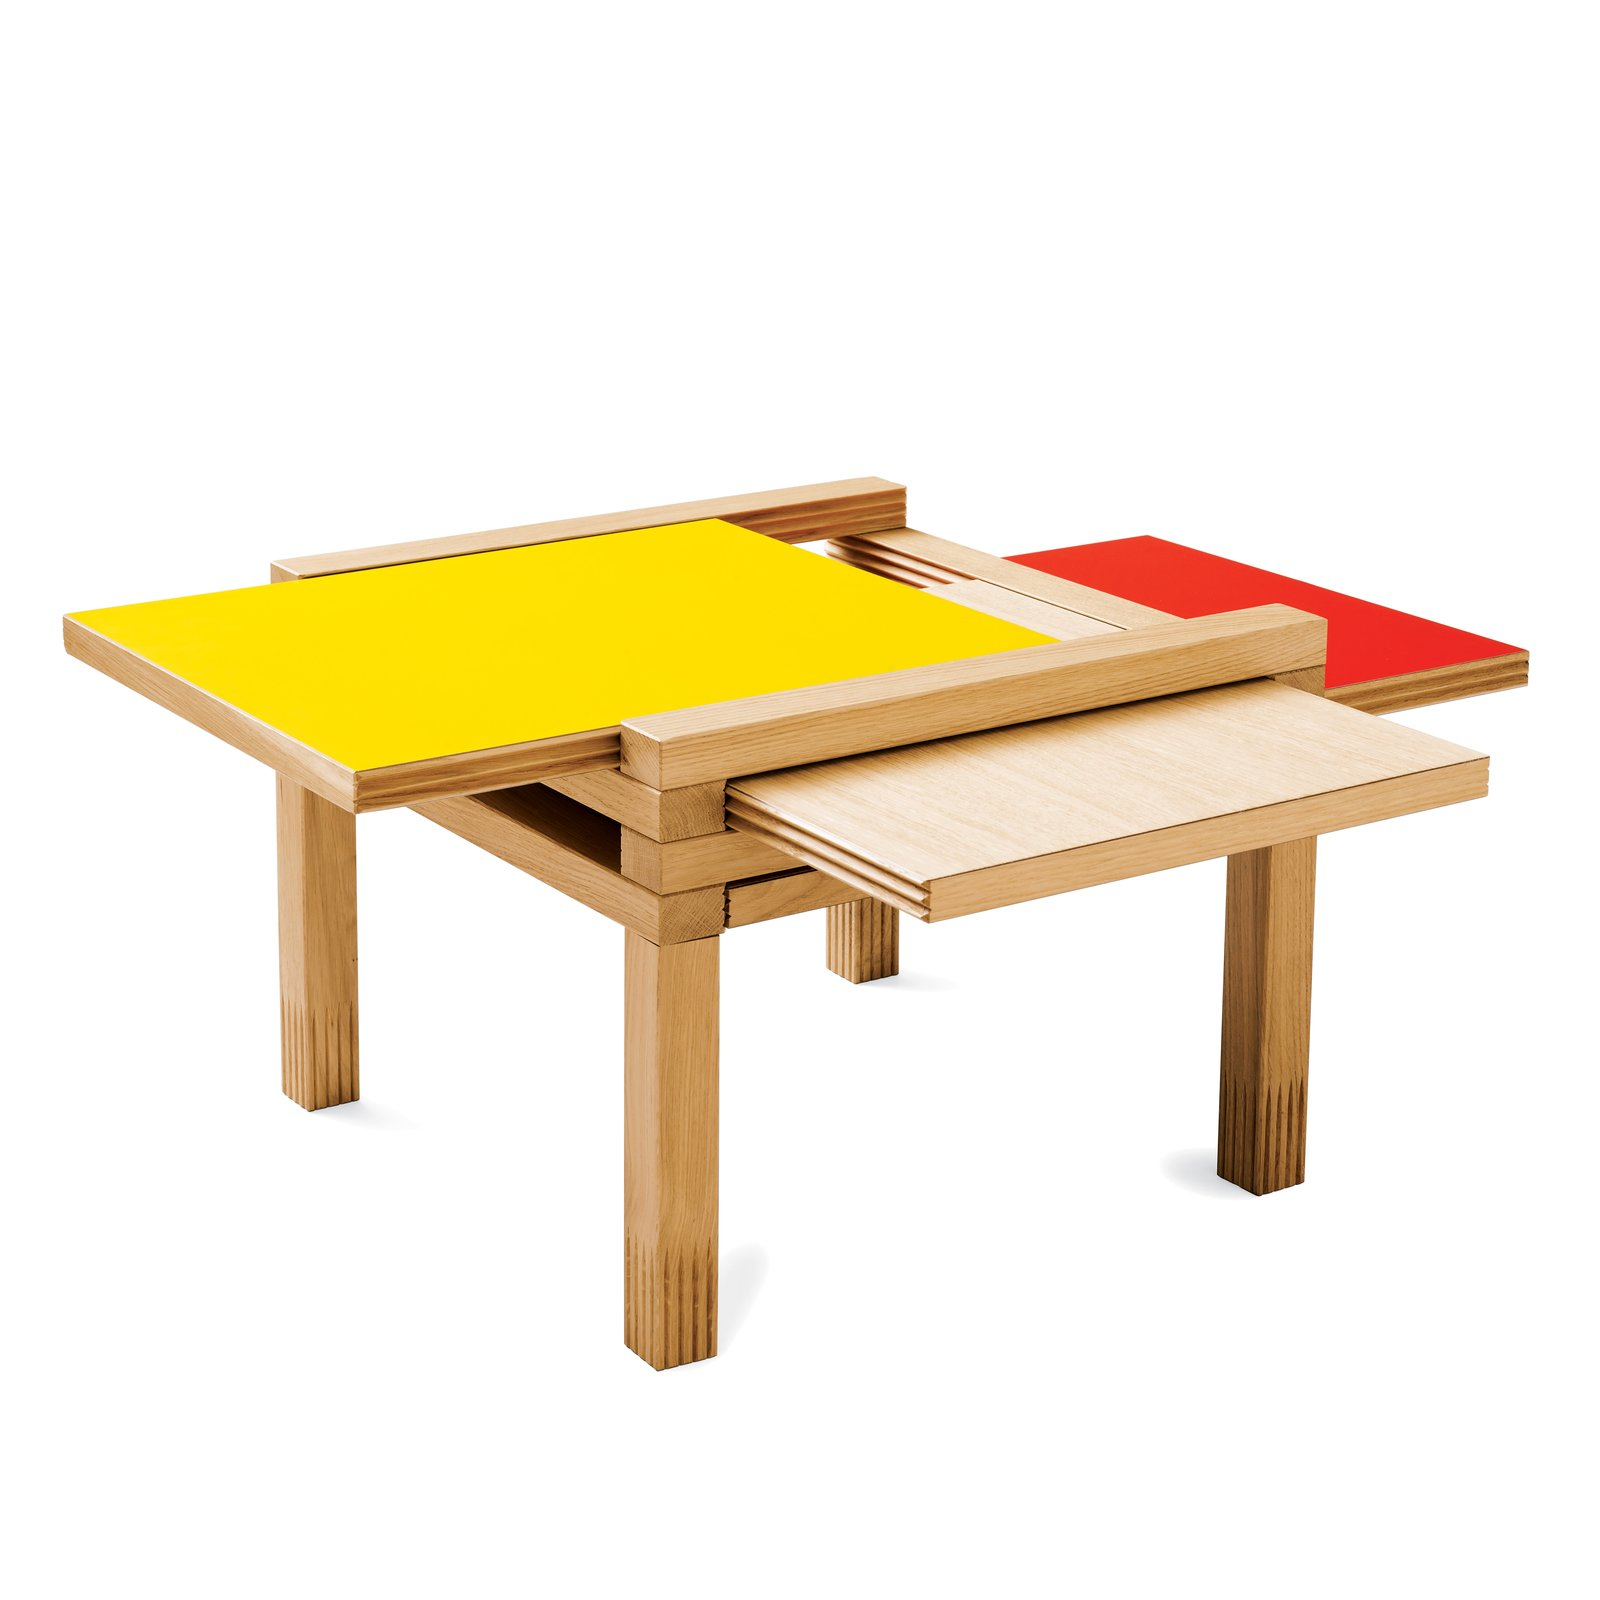 Par4 Coffee Table  Four multi-colored tabletops reverse and slide out to expand the usable surface.  Tiny Furniture: Diminutive Home Picks  by Kelsey Keith